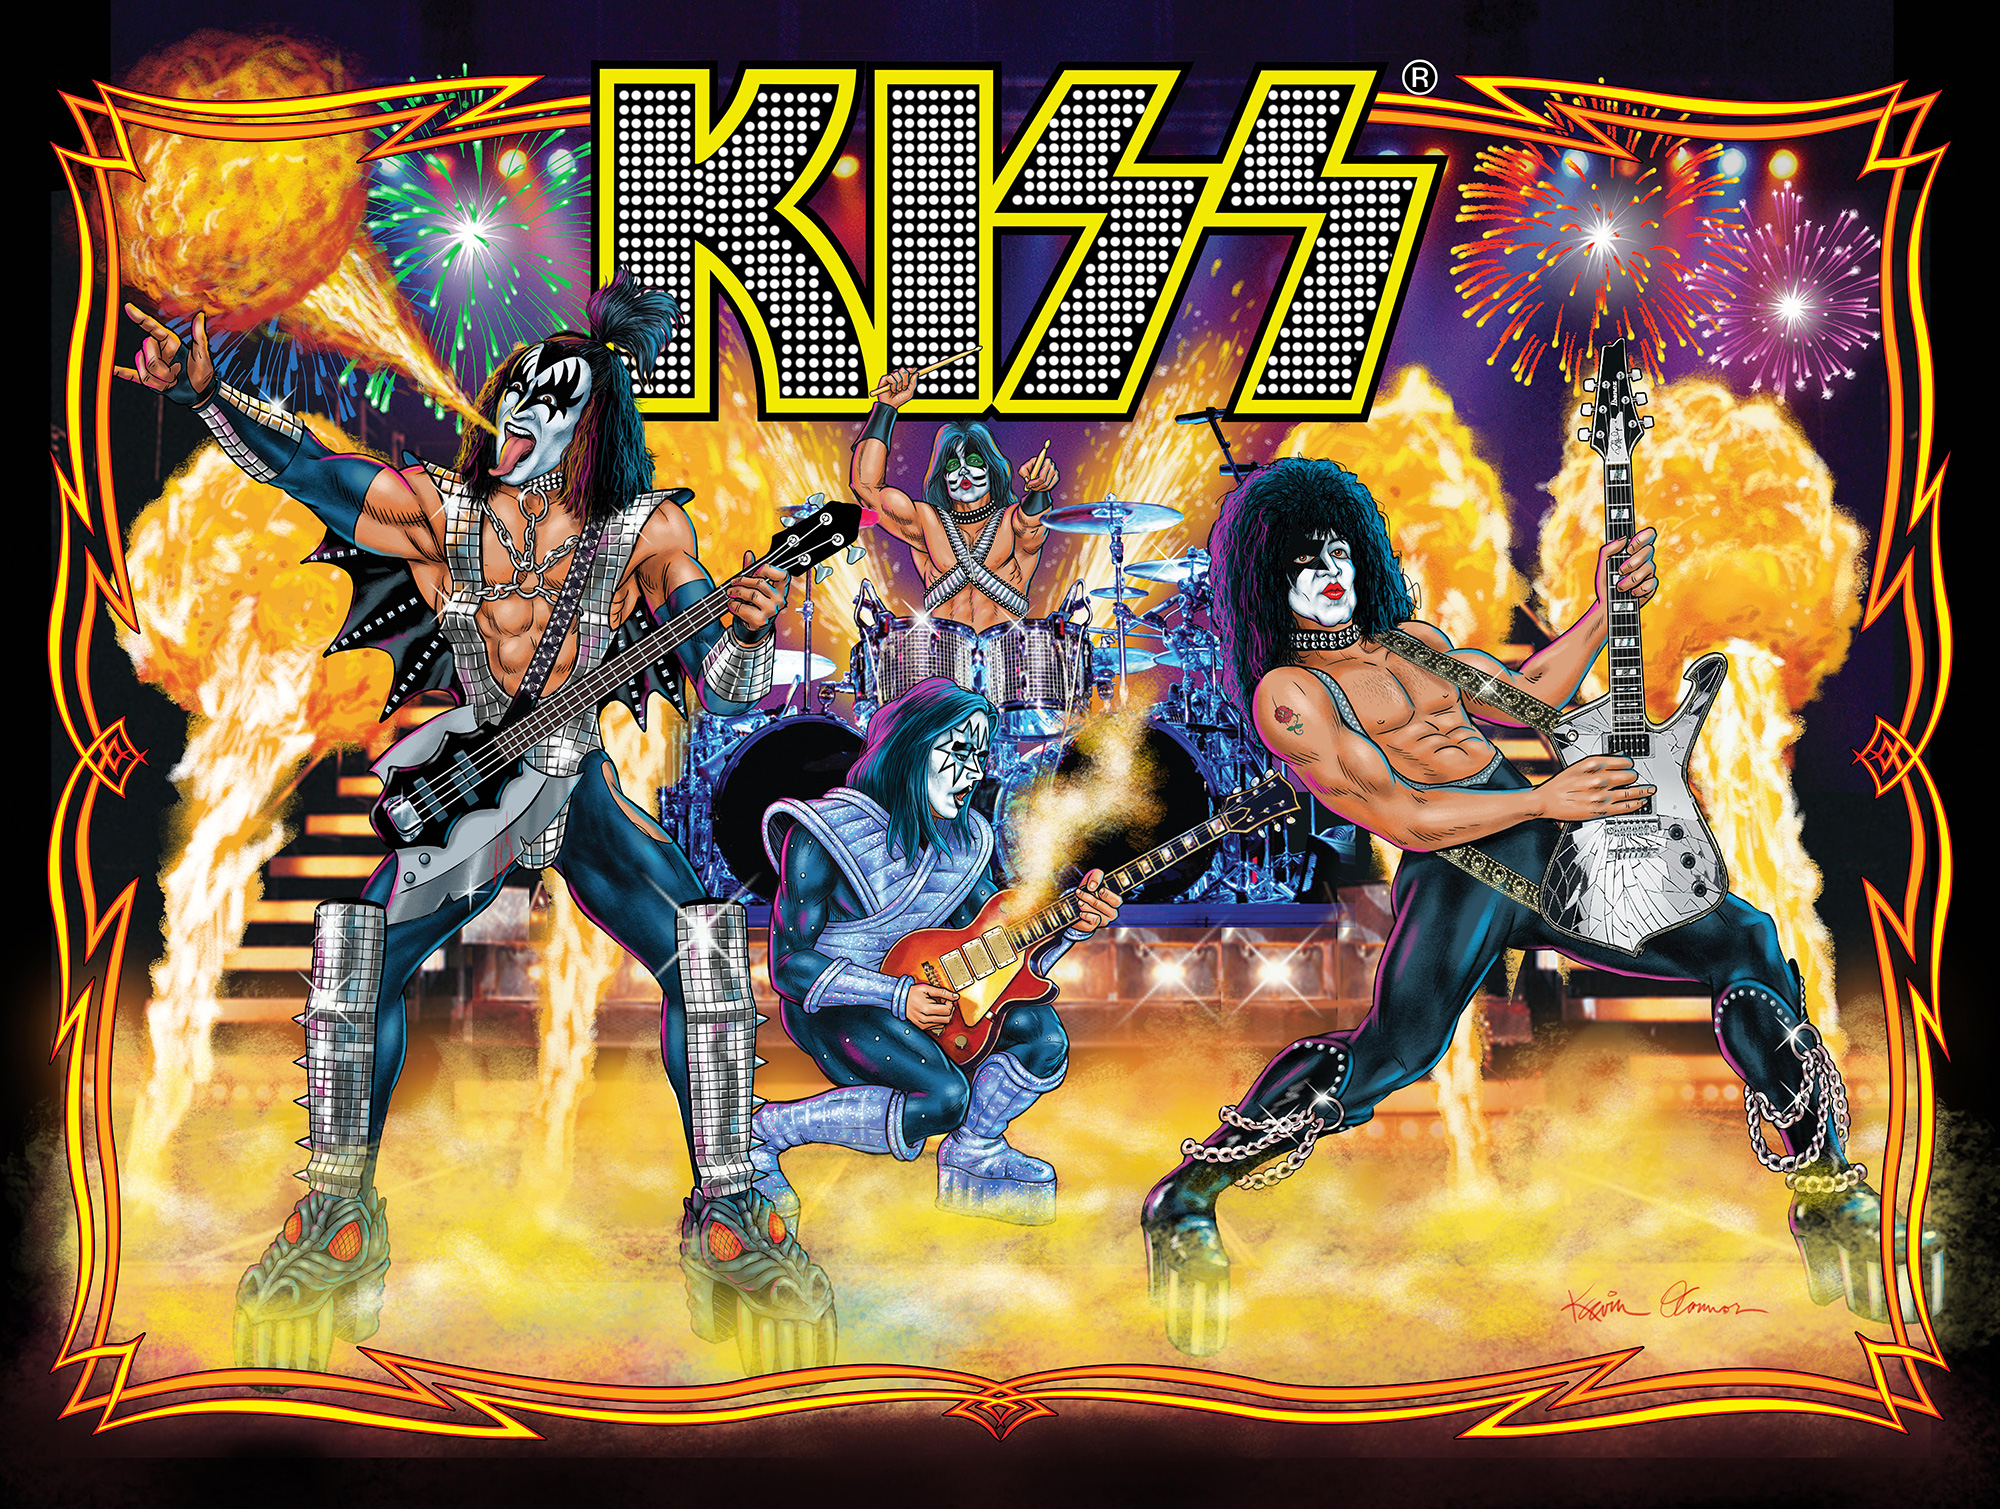 Specialized Wallpaper Hd Play Pinball Like It S 1978 With The New Kiss Game Ars